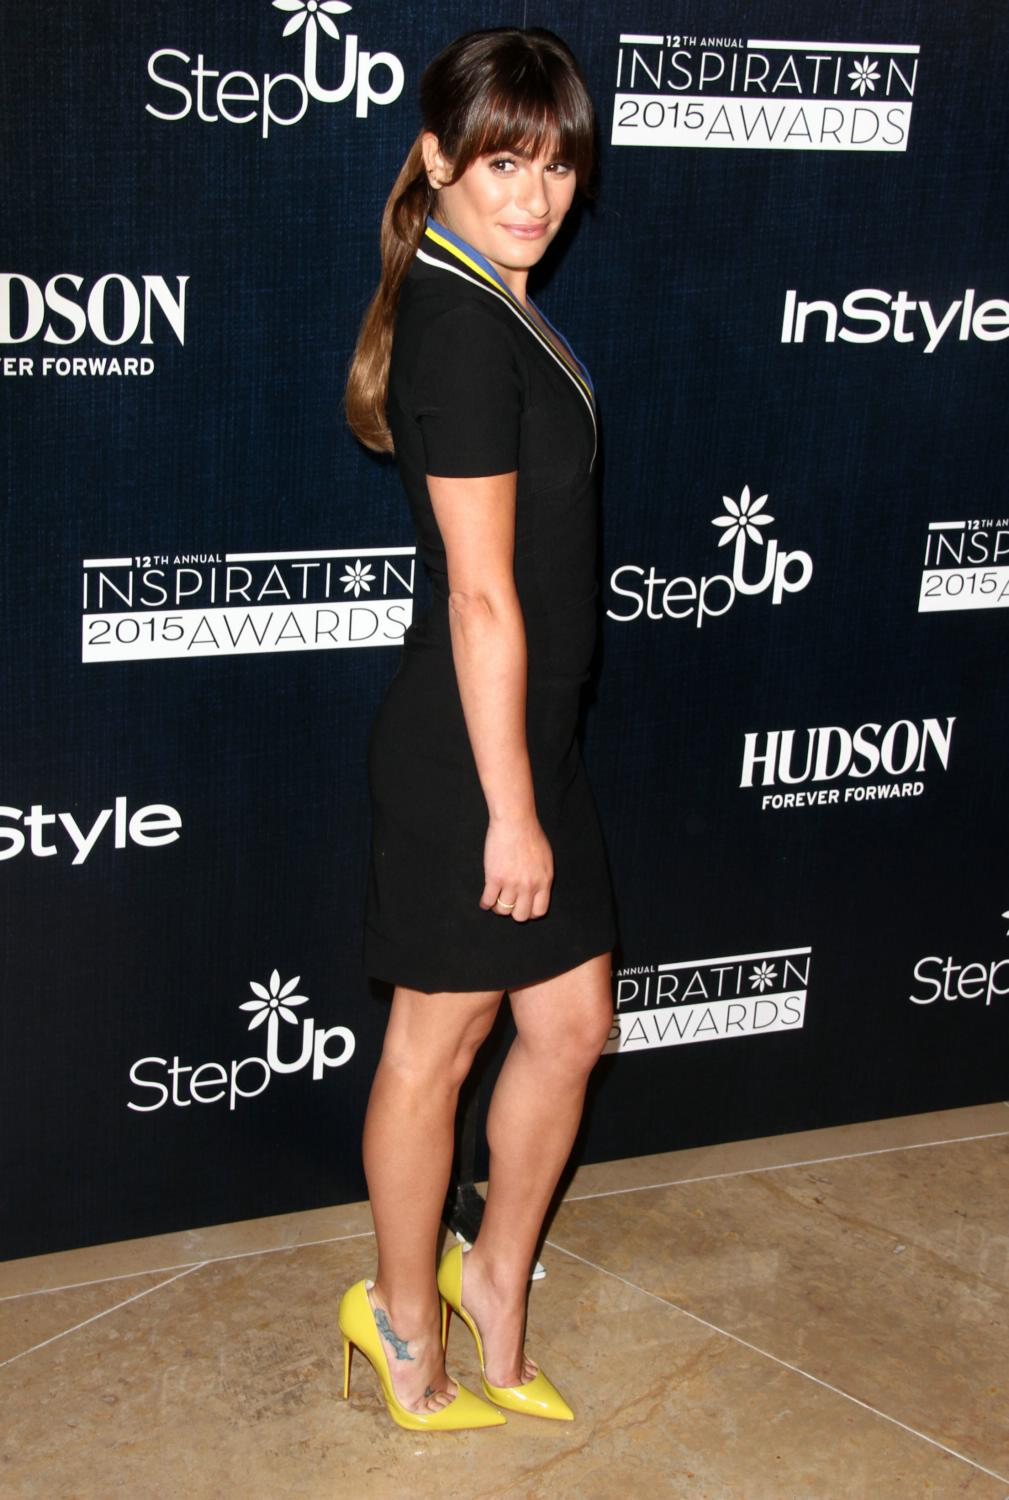 ea-michele-at-the-12th-annual-inspiration-awards-june-5